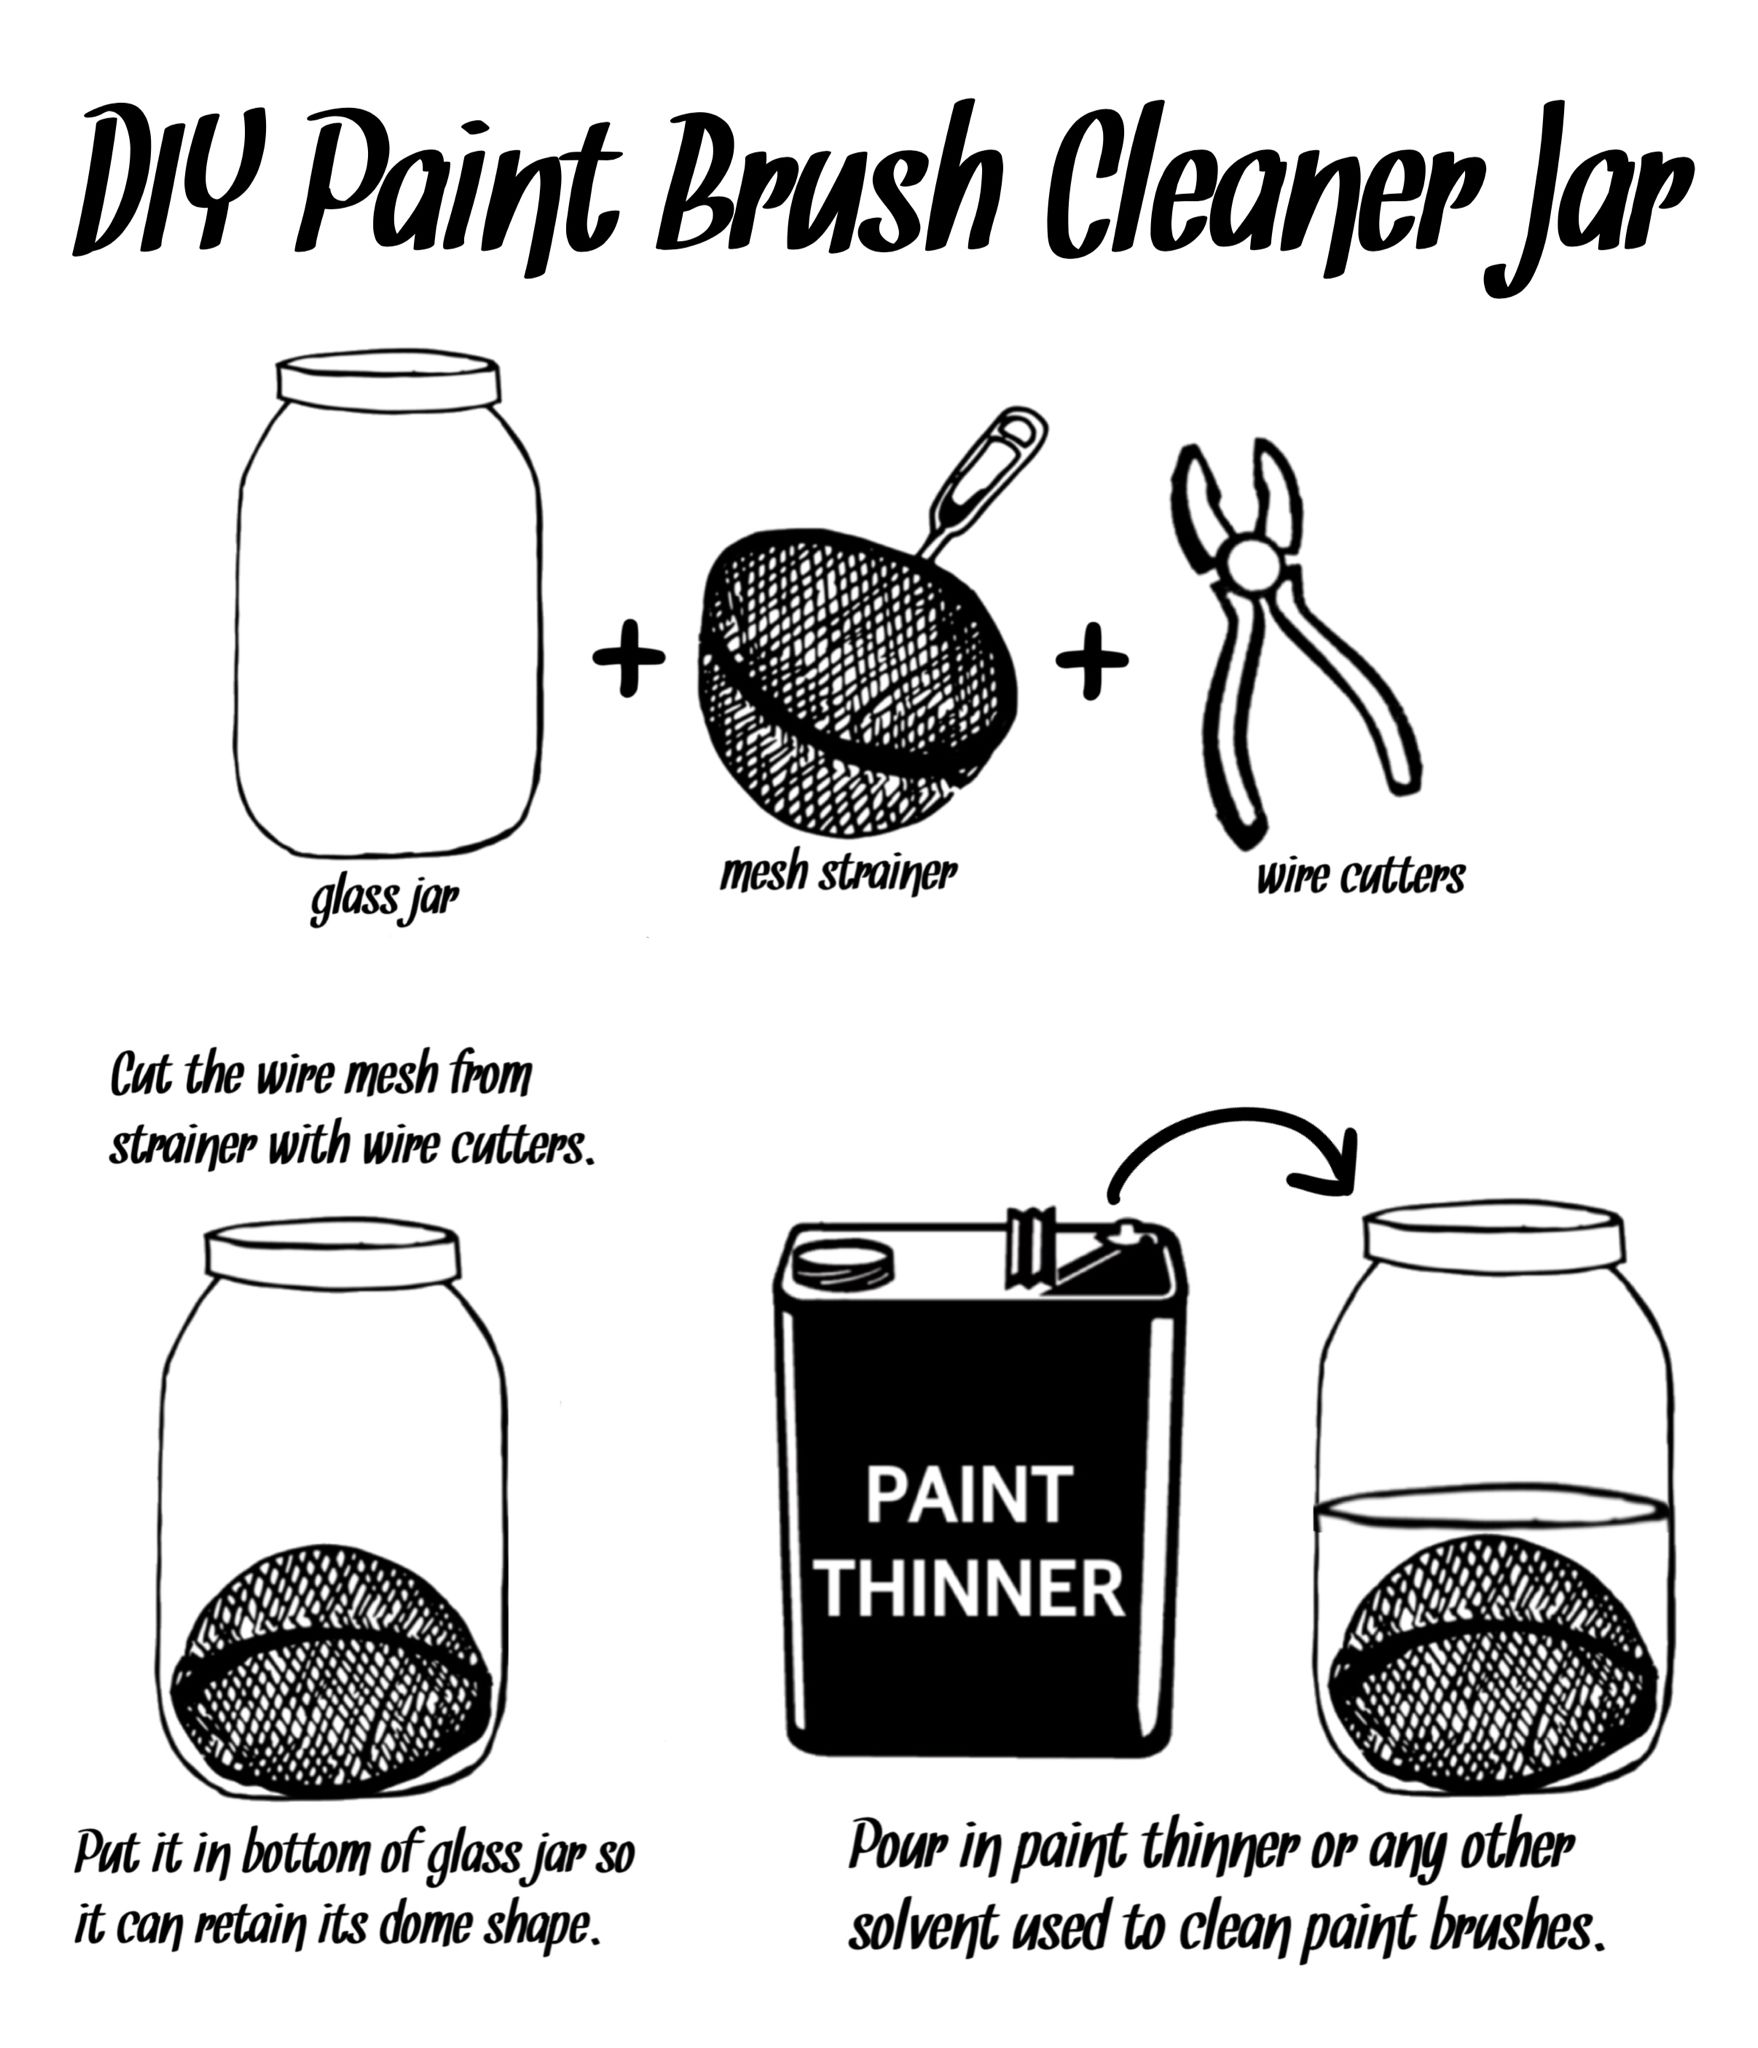 how to clean paint brushes with paint thinner